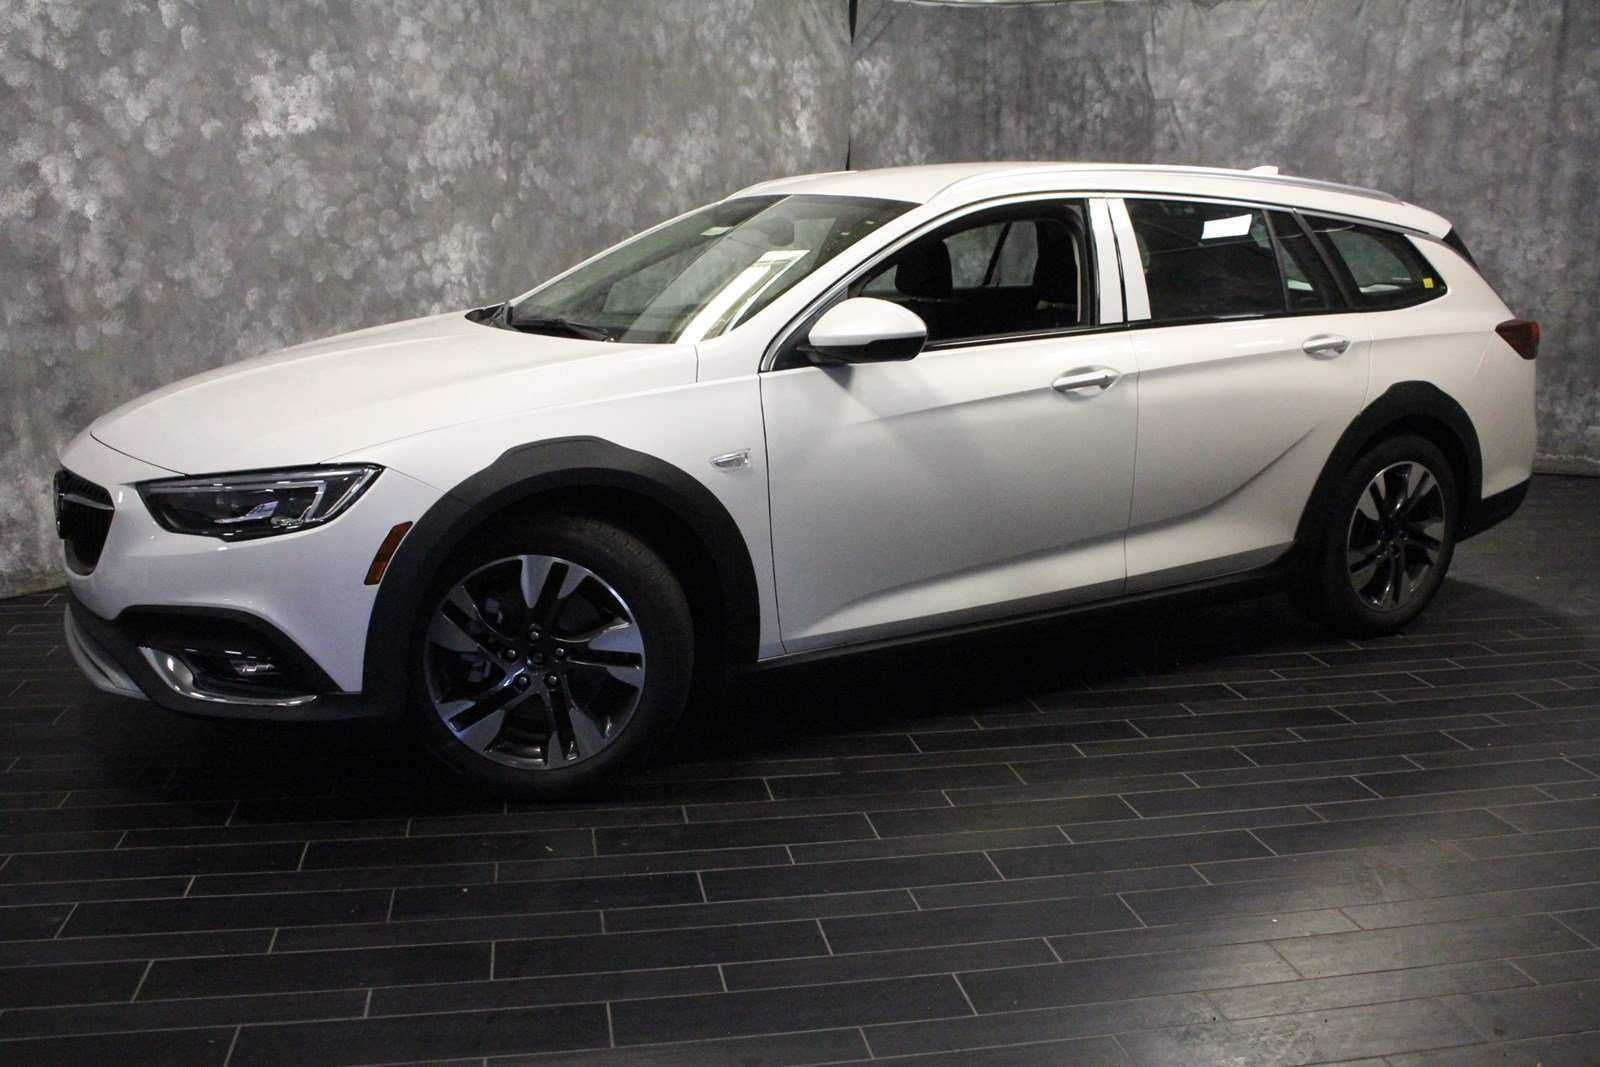 28 New 2019 Buick Regal Concept And Review